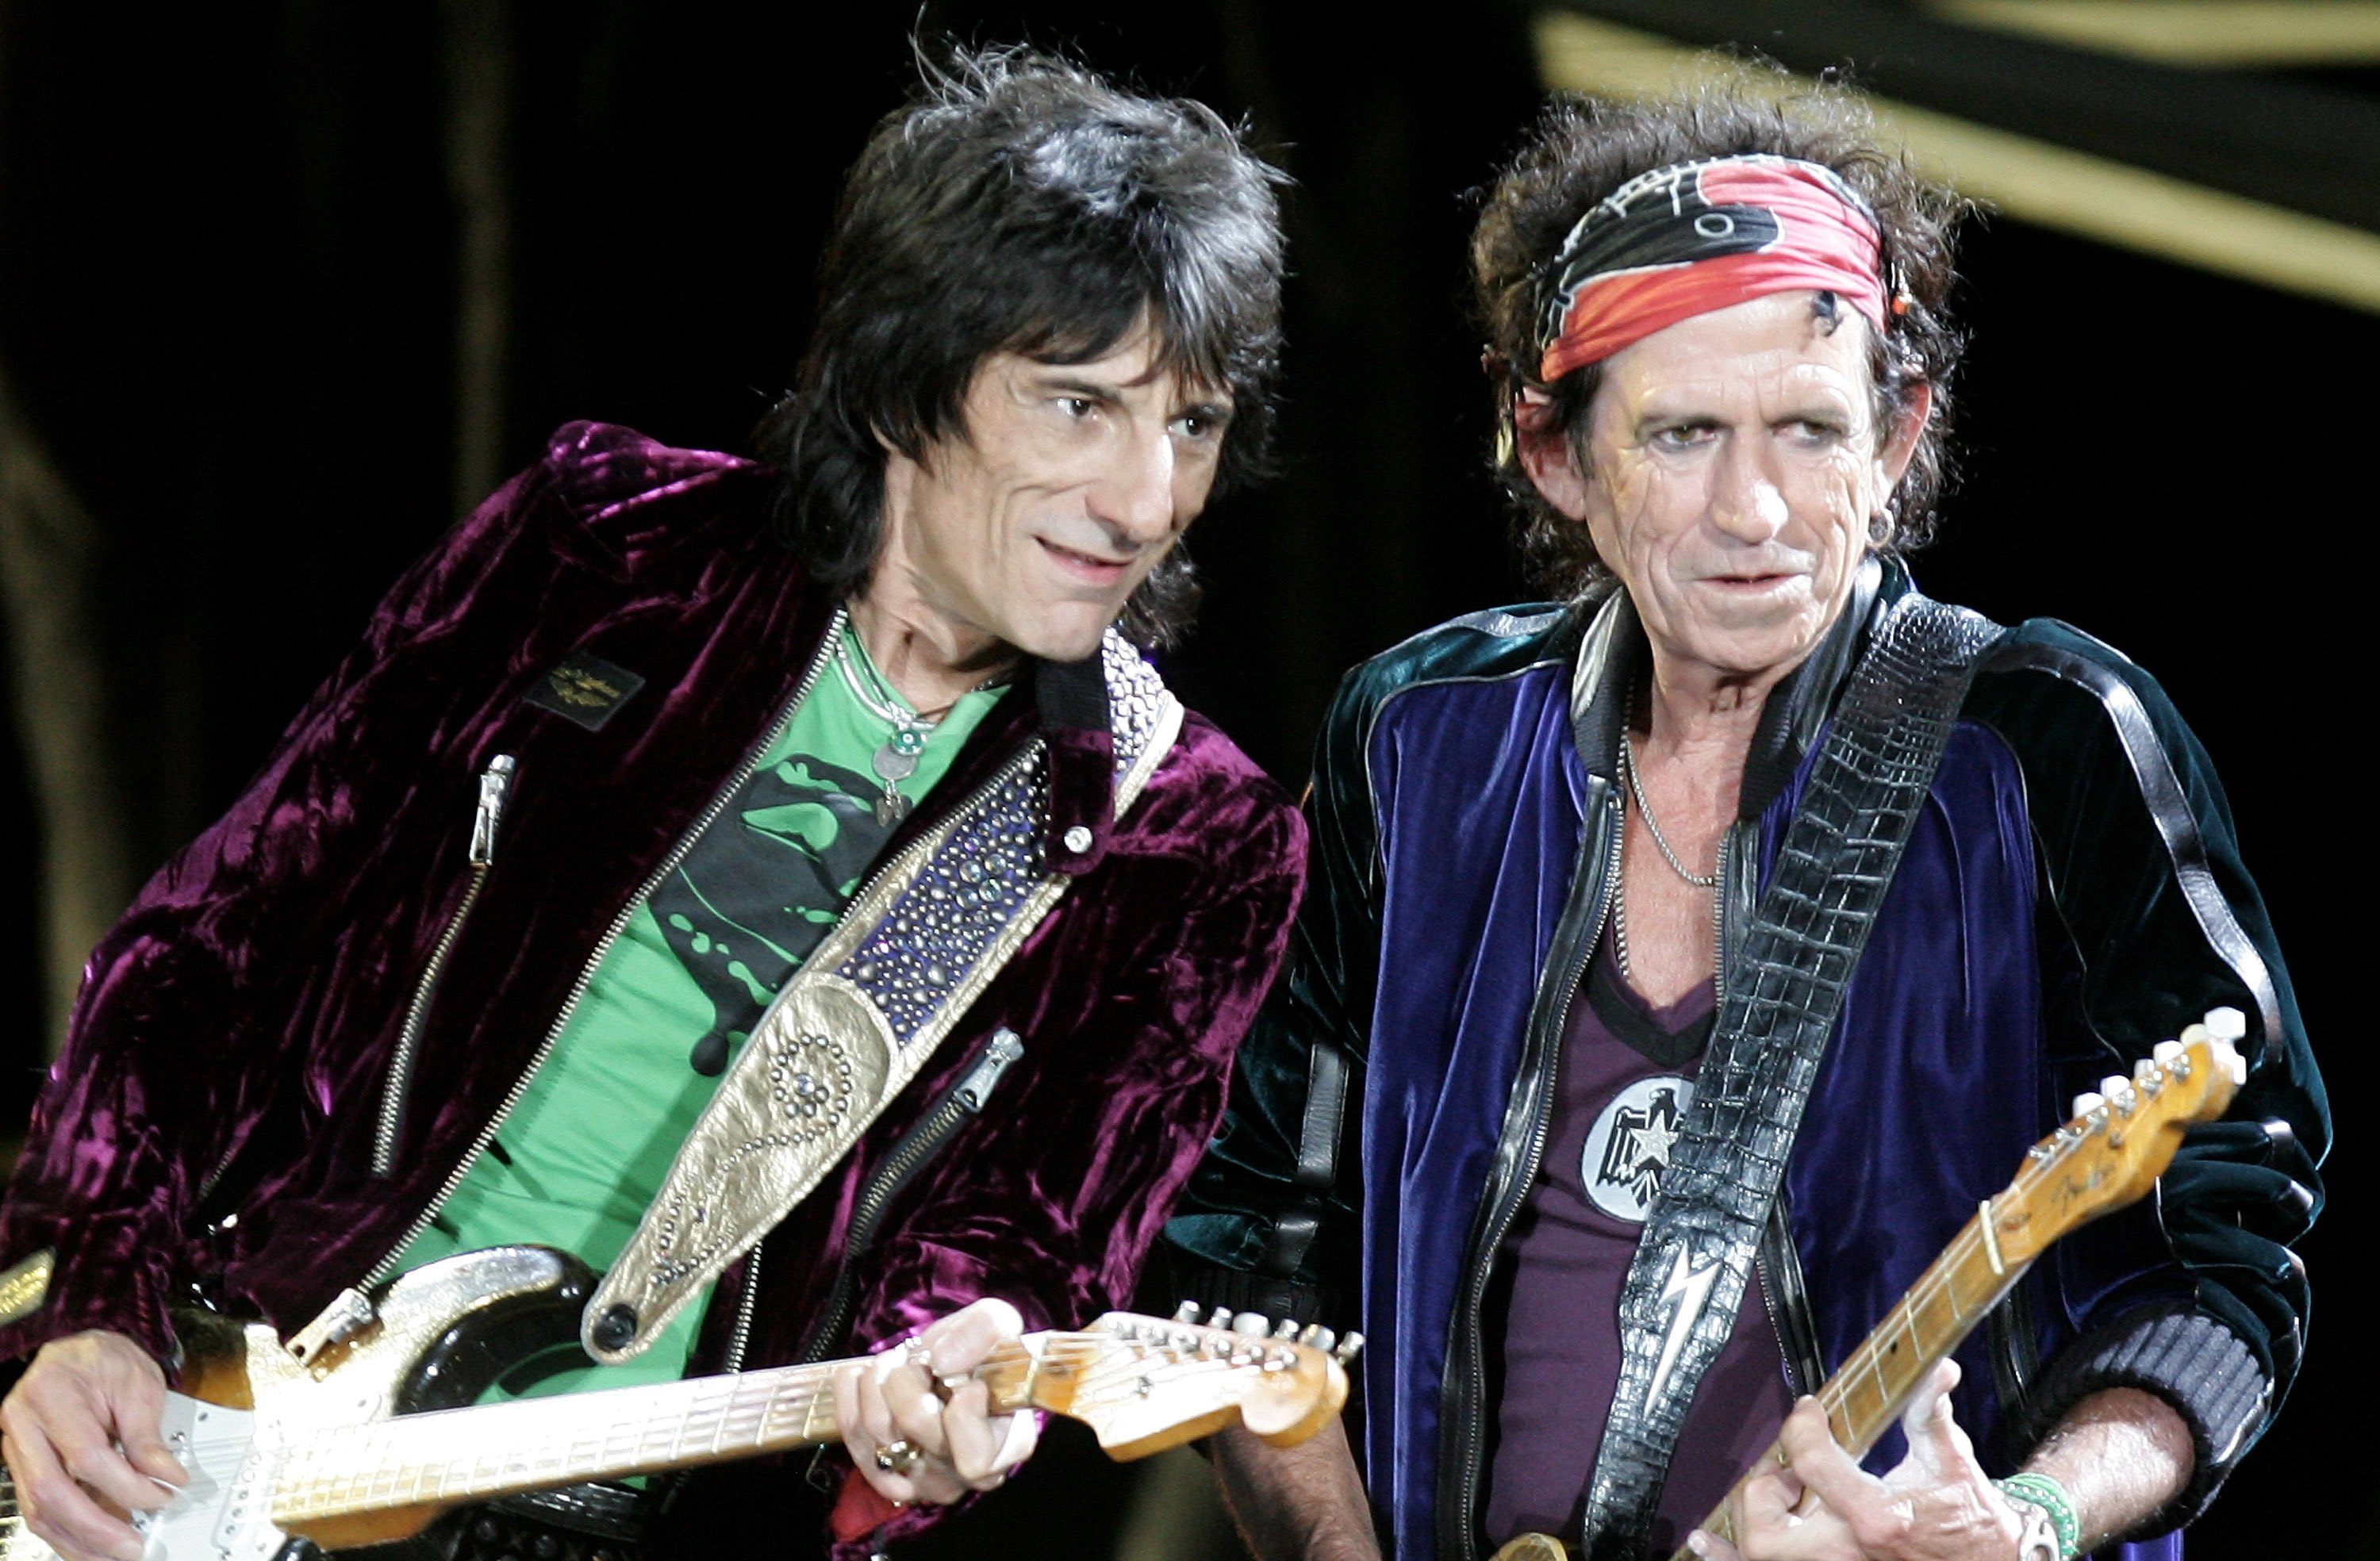 LONDON - AUGUST 20:  The Rolling Stones members Keith Richards and Ron Wood(L) perform on stage at Twickenham Stadium August 20, 2006 in London, England.   (Photo by MJ Kim/Getty Images)